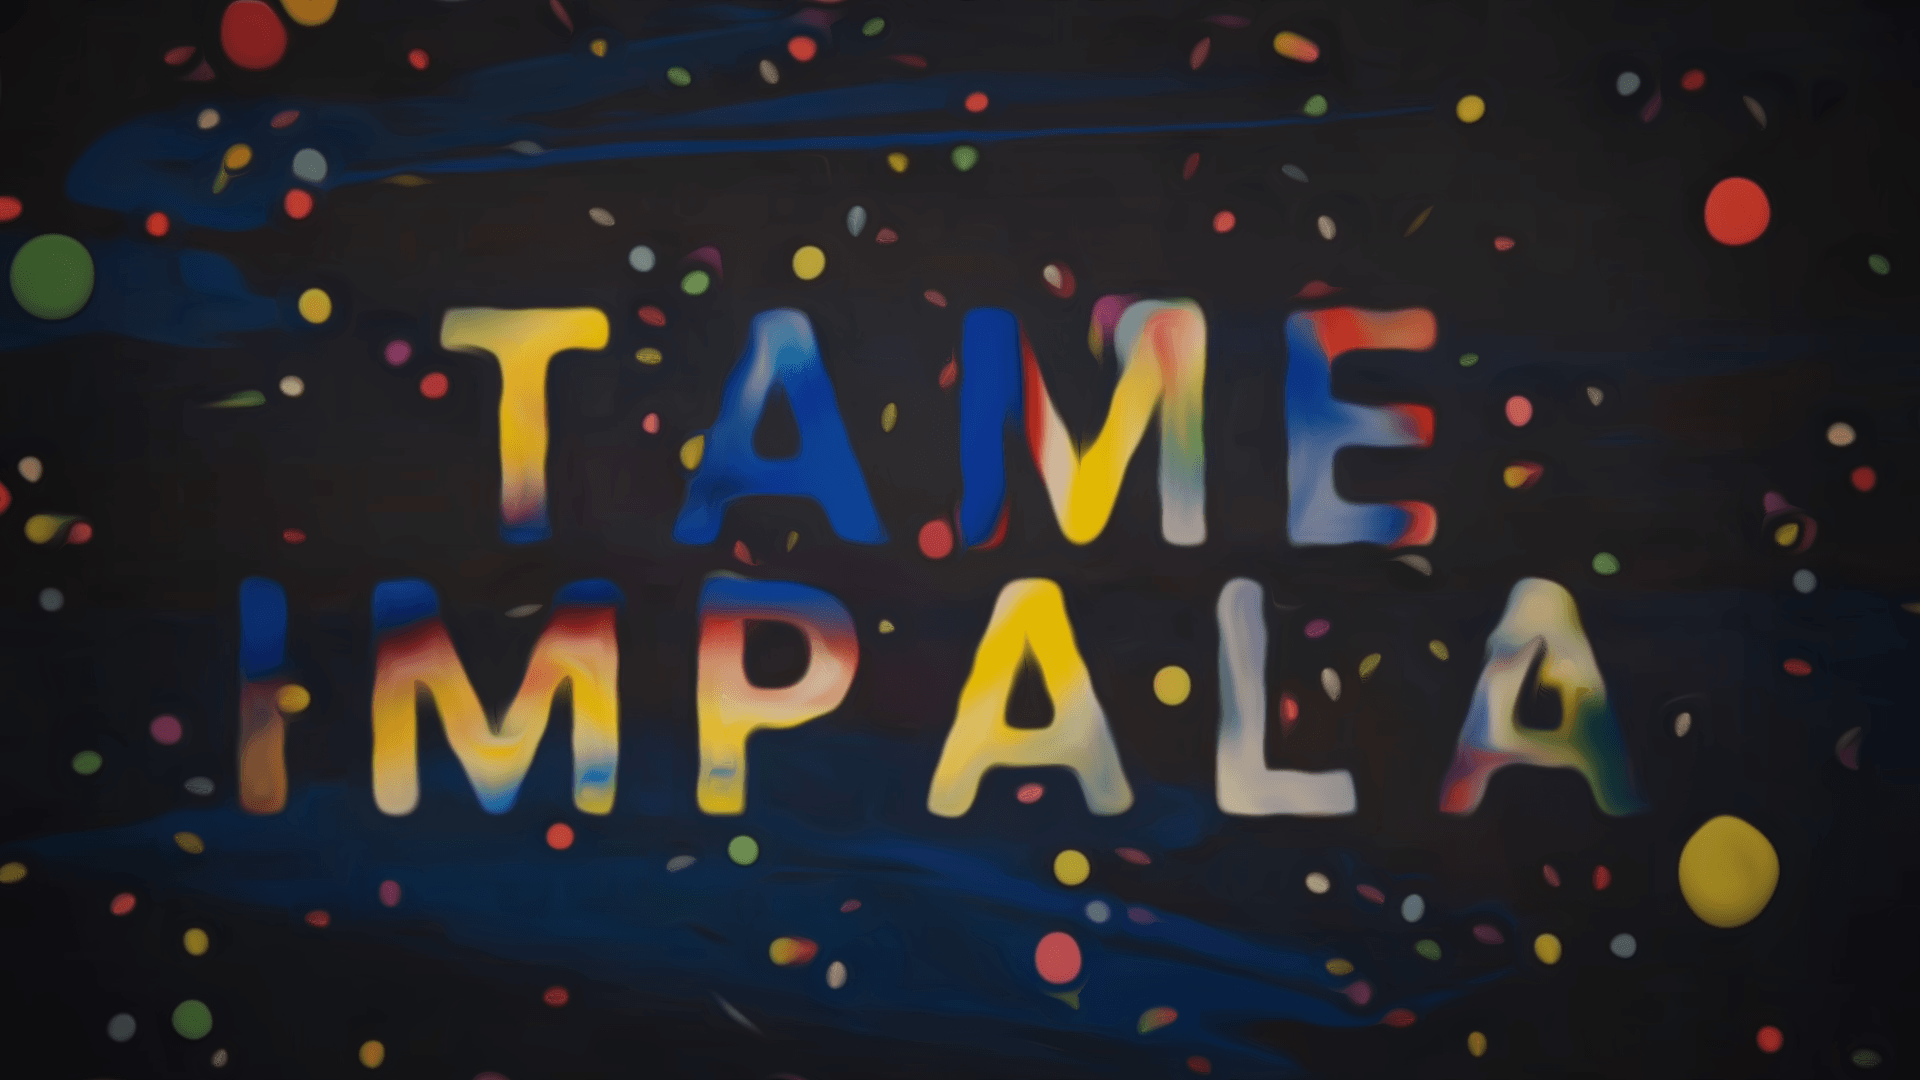 1920x1080 I made the Tame Impala wallpaper smoother in Photoshop, tell me if ...